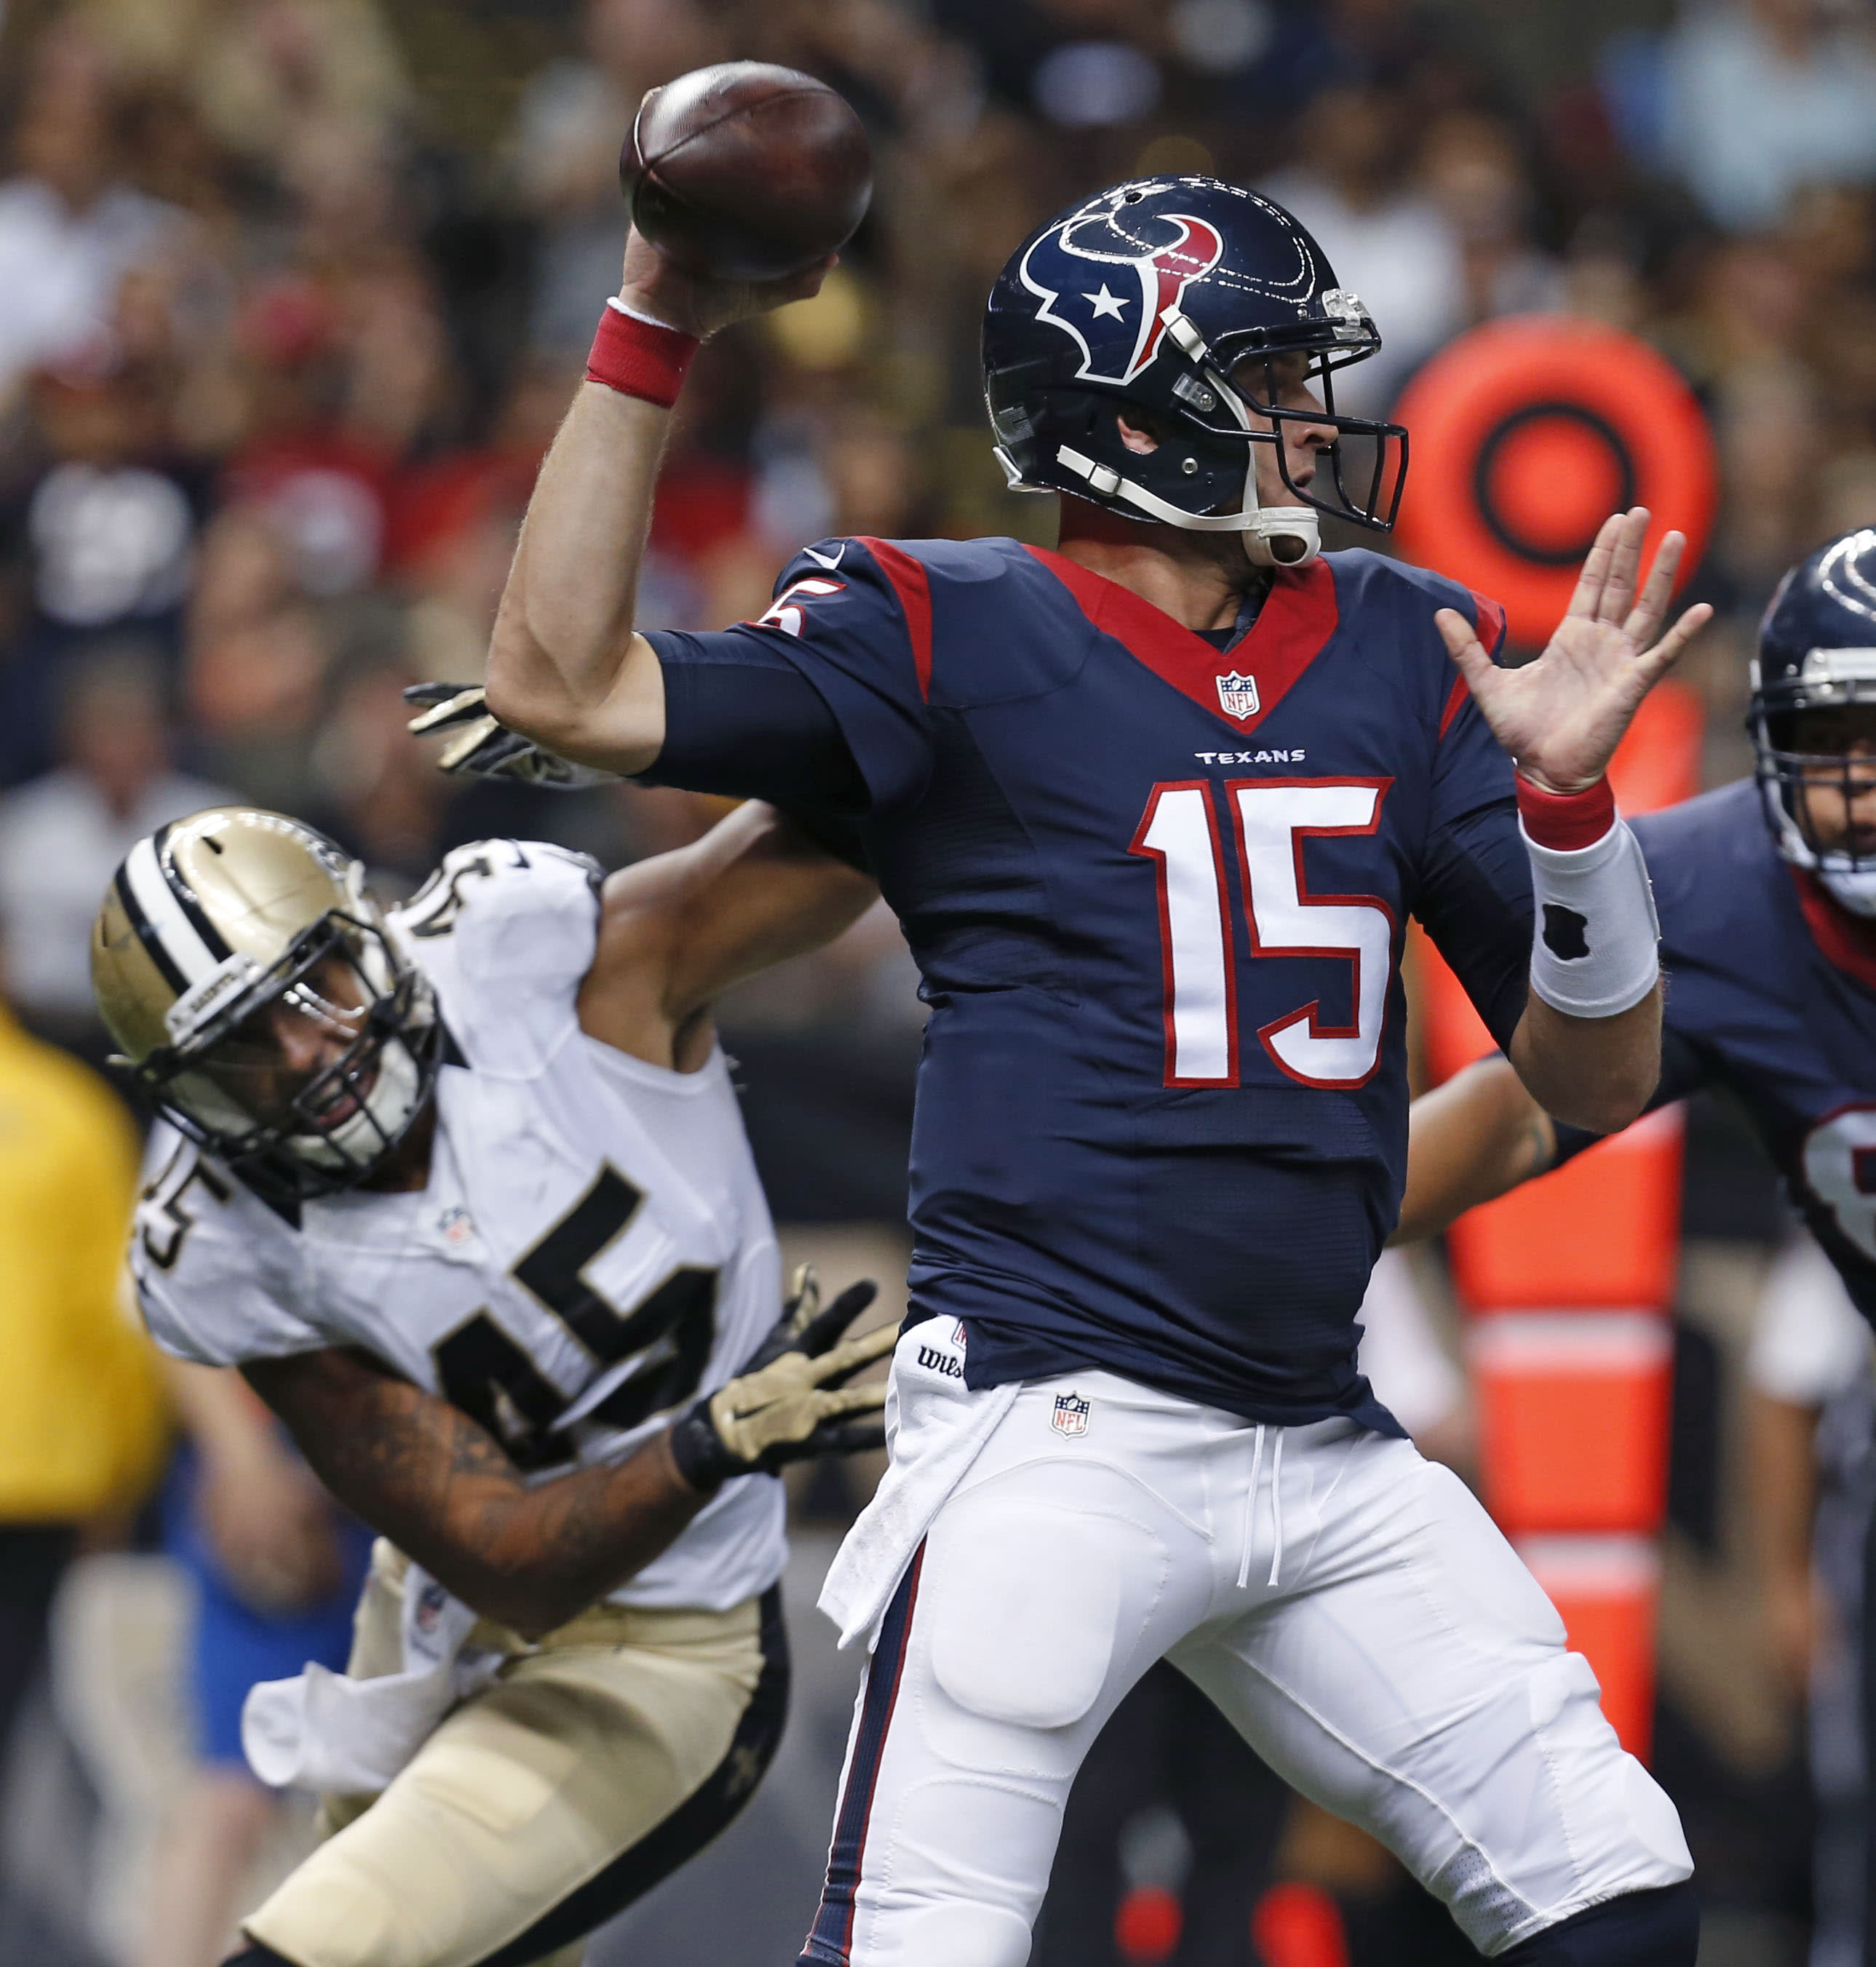 Texans take preseason win over Saints 27-13